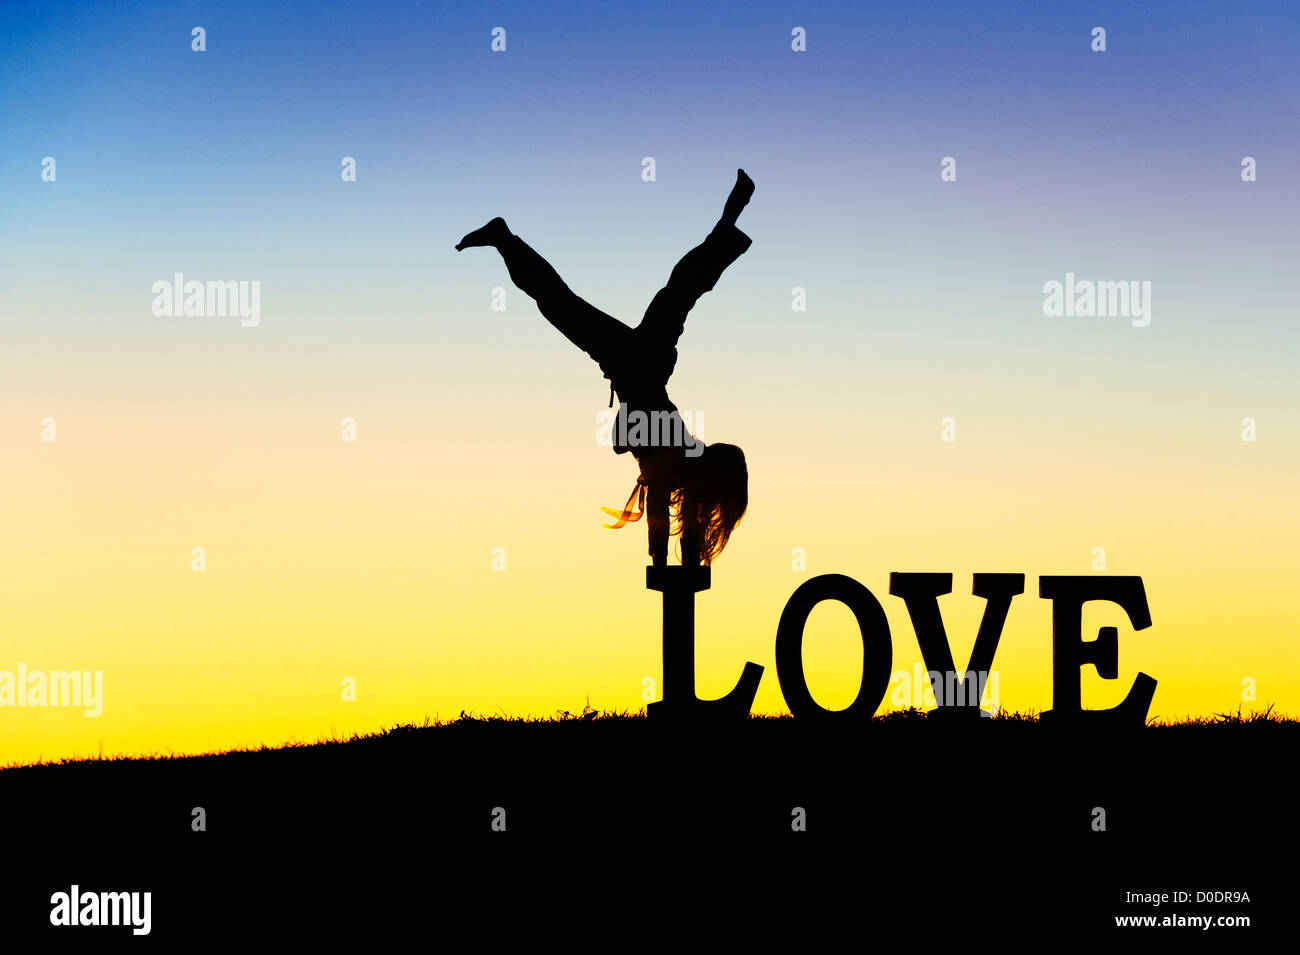 Young Girl doing a handstand on LOVE letters. Silhouette. Montage of two images for the concept of head over heels - Stock Image